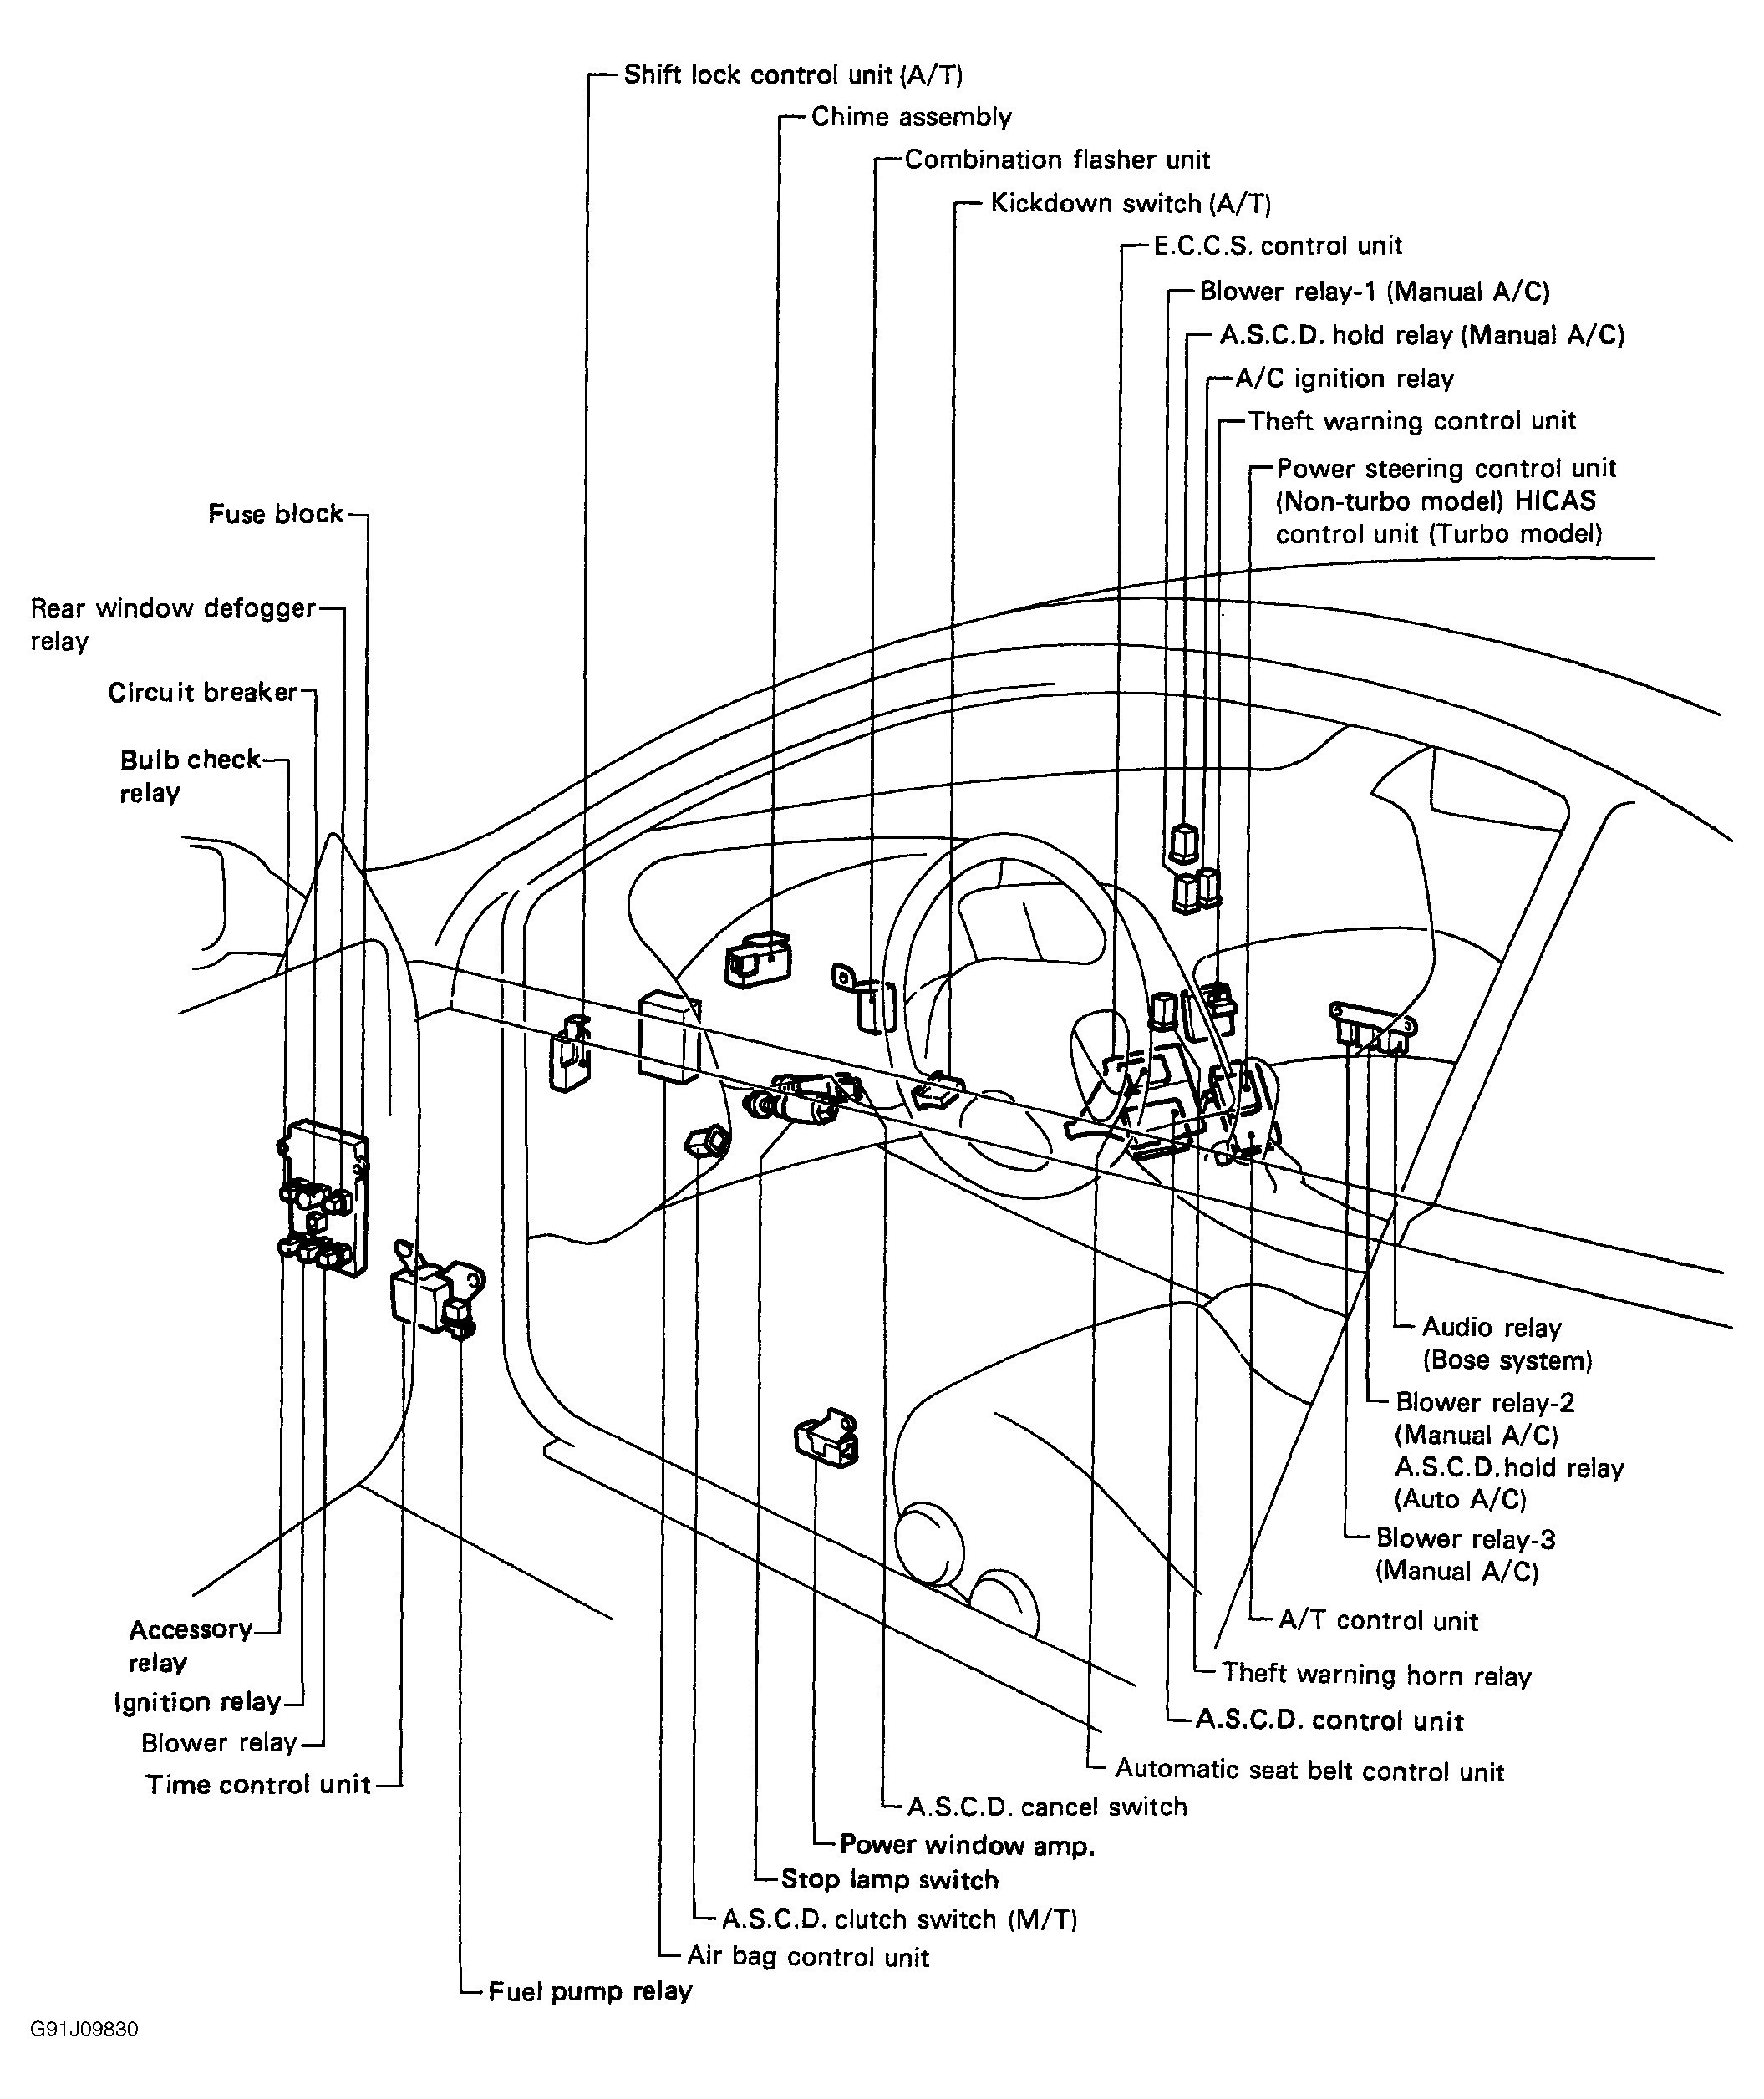 Relay Nissan Hardbody Wiring Diagram - Wiring Diagram Schemas